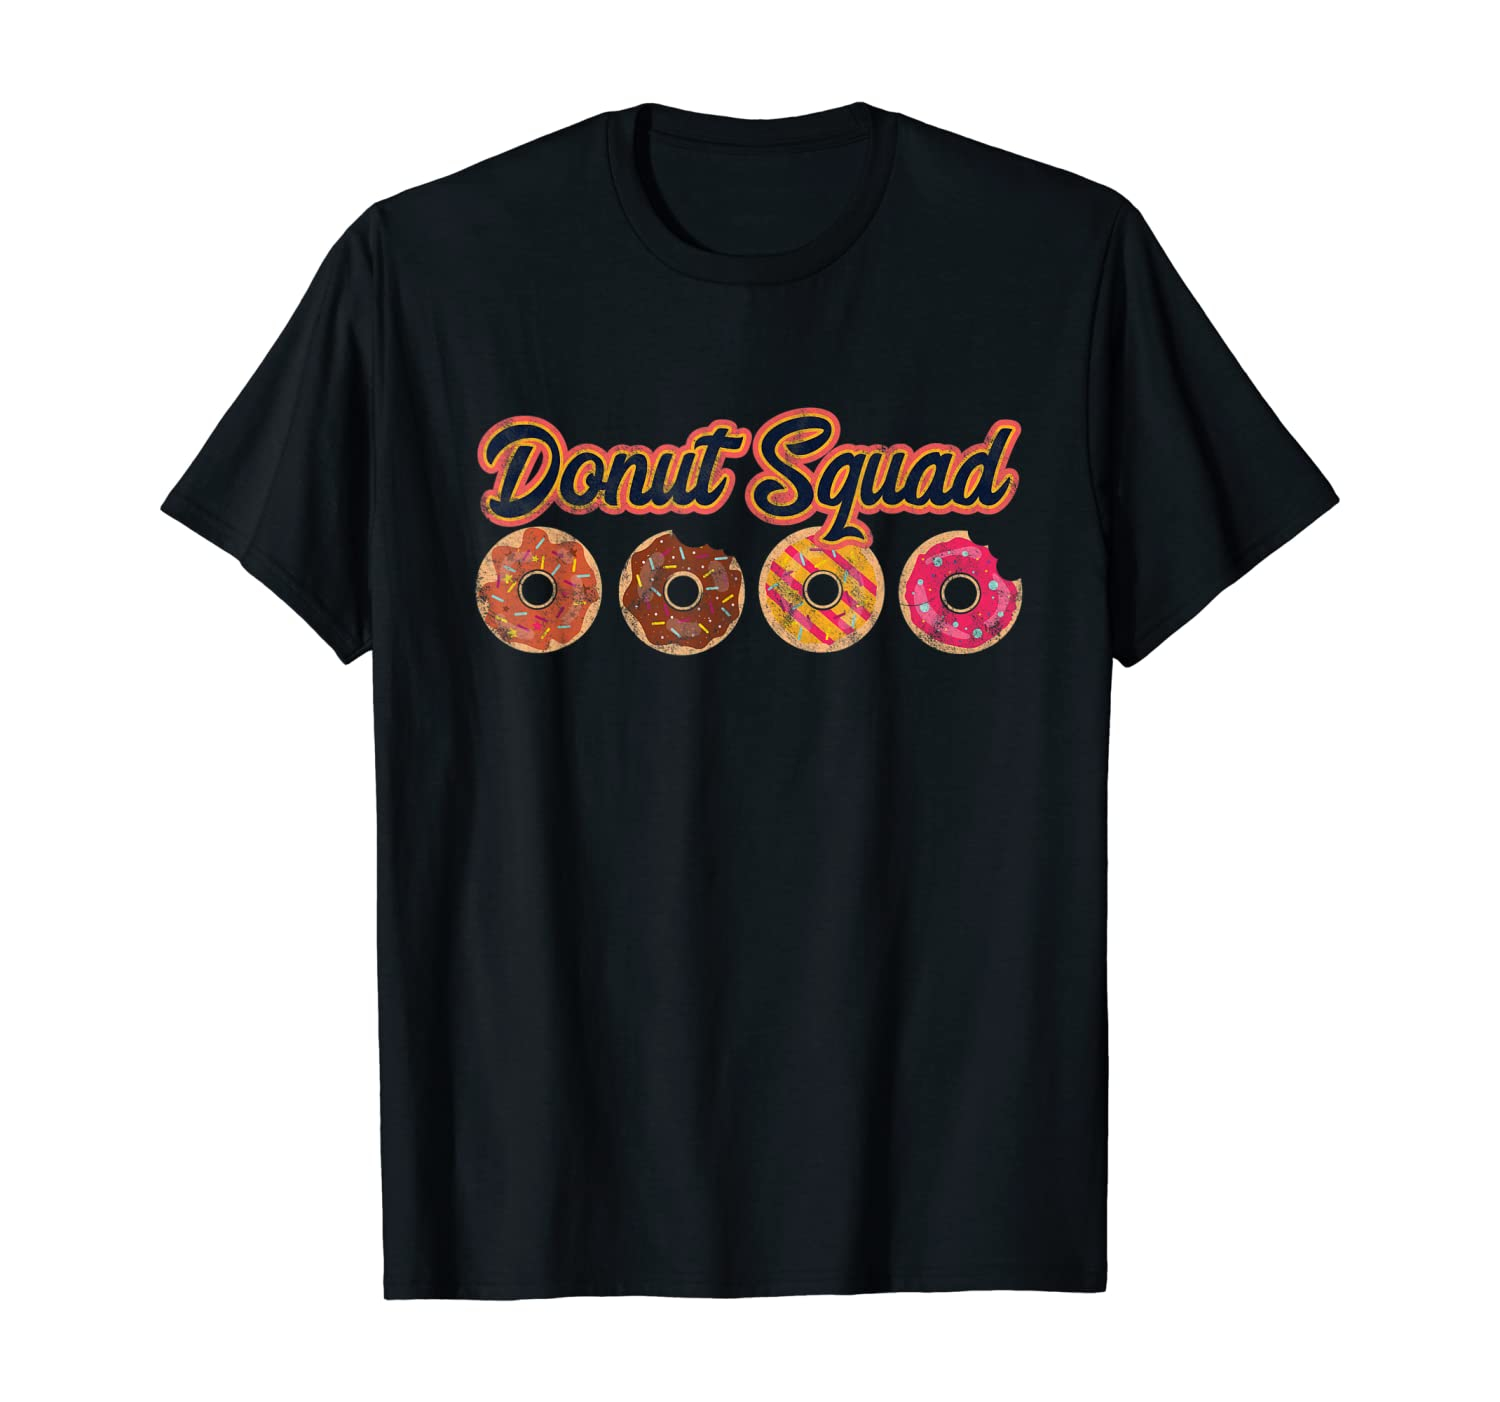 Donut Squad Bakery Coffee Shop Gift T-Shirt